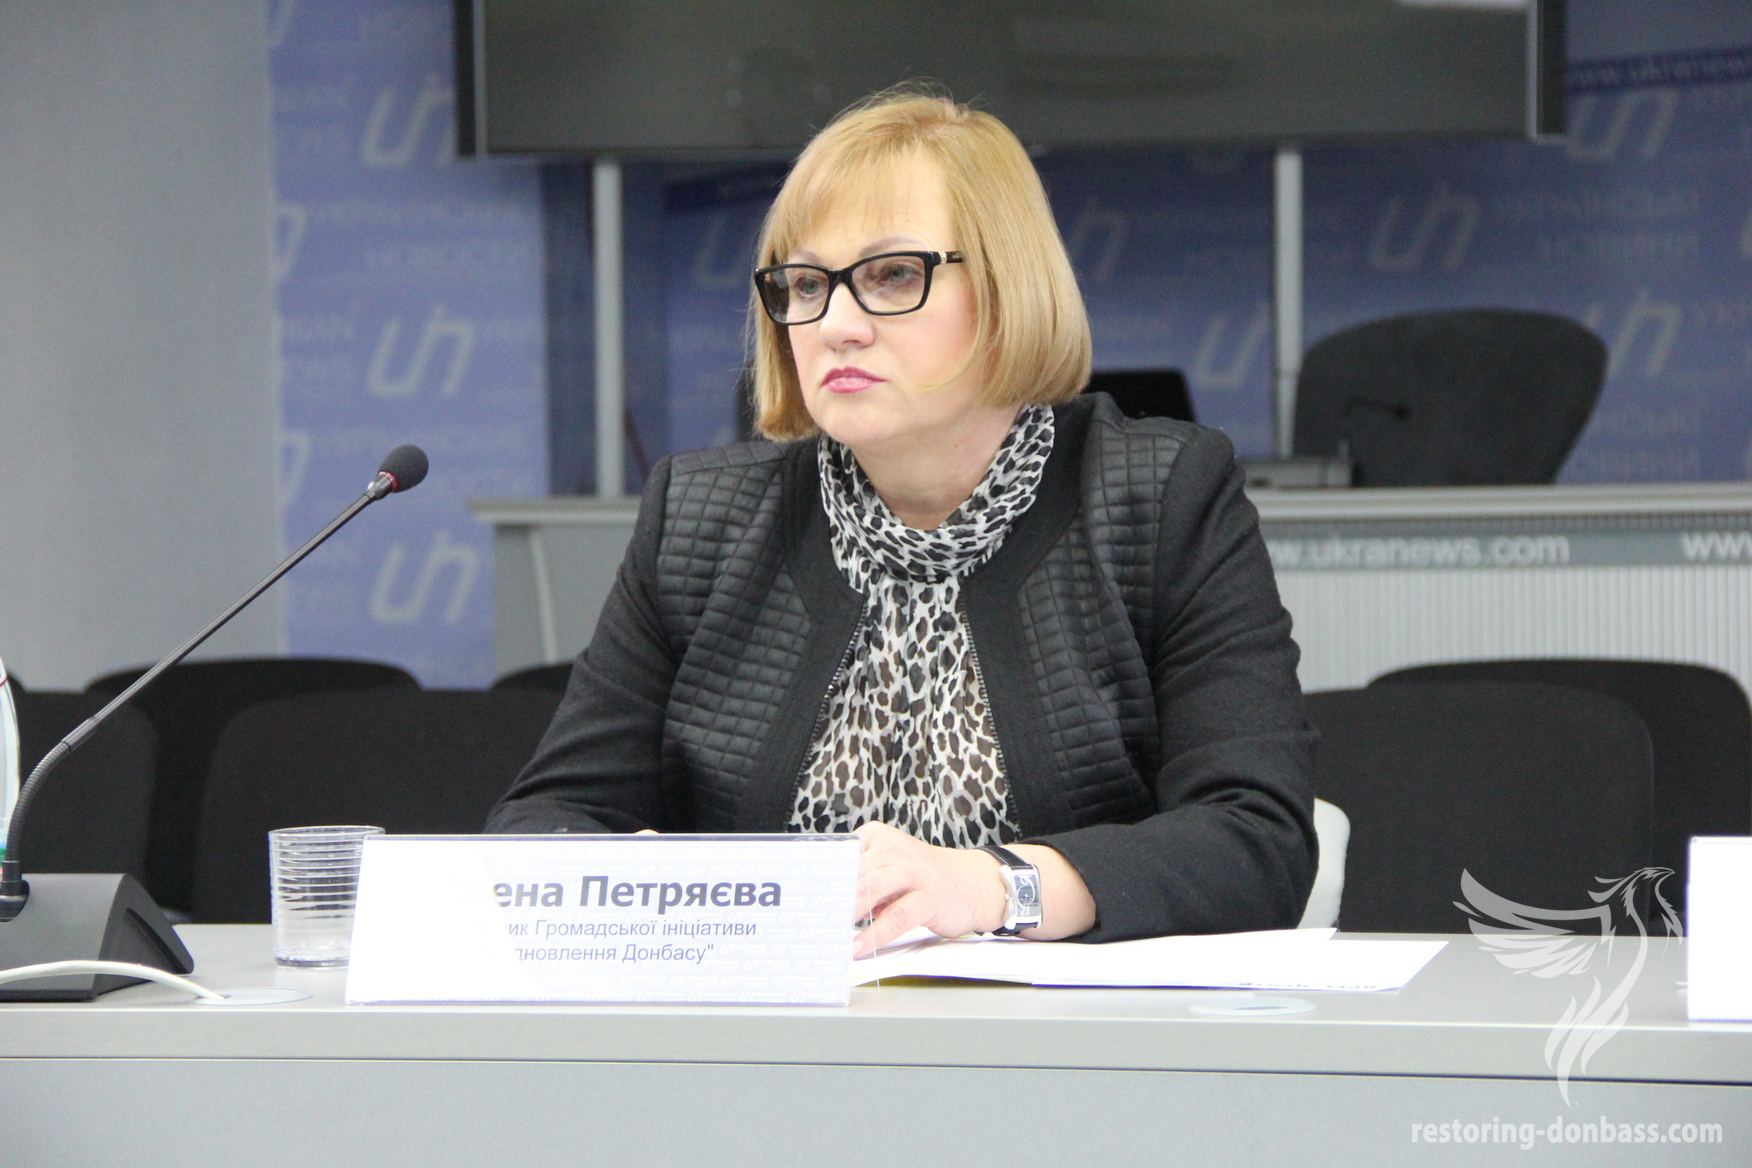 The head of the Initiative Elena Petryaeva made a presentation at the round table dedicated to mine safety